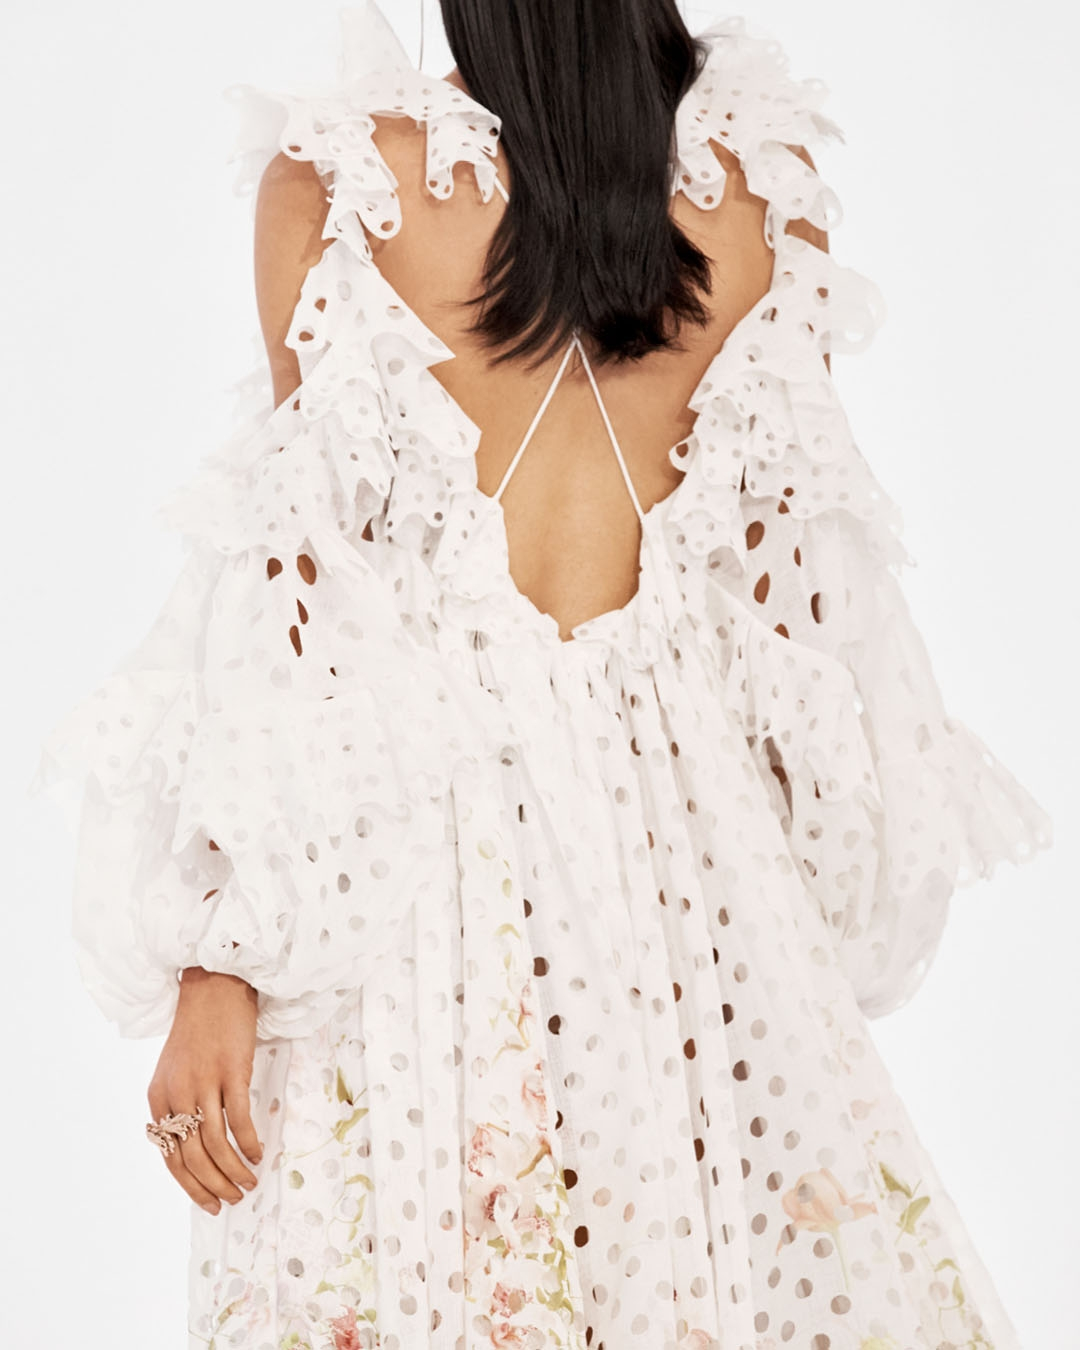 IN THE DETAIL: LOOK 24 SPRING READY TO WEAR 2022